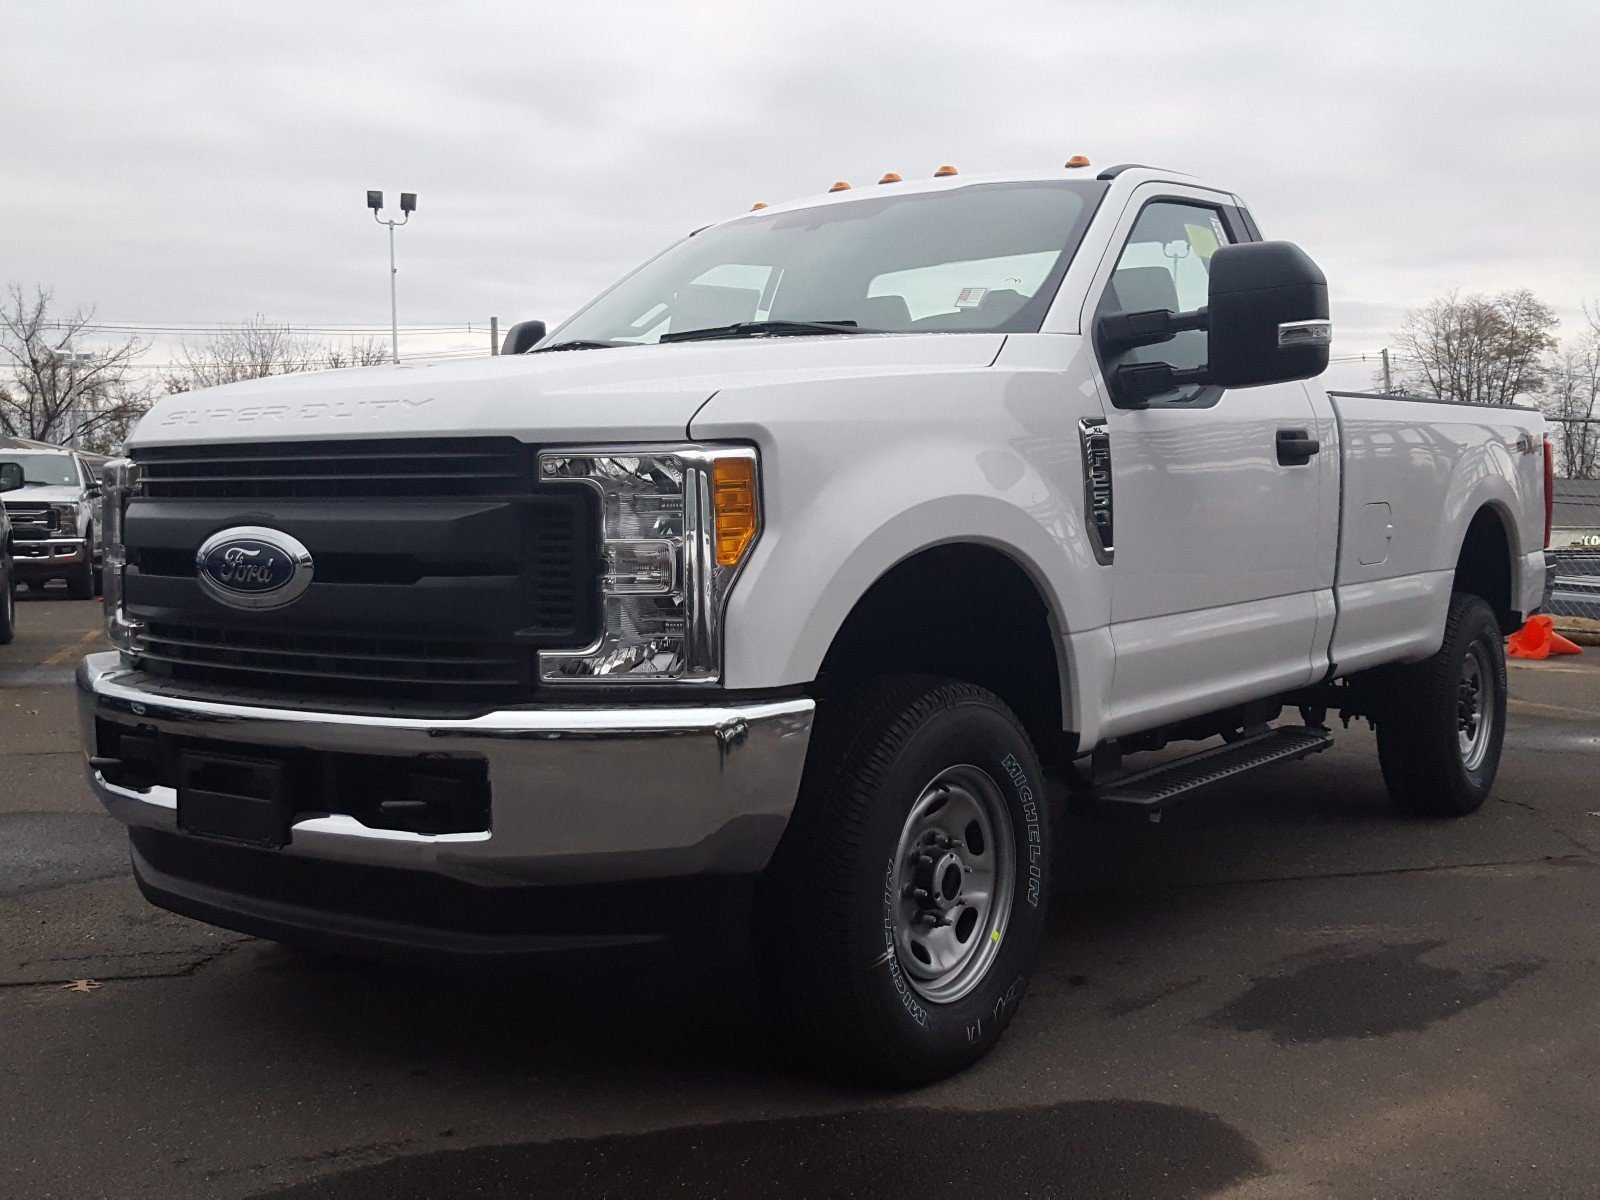 2017 F-250 Regular Cab 4x4, Pickup #QT069 - photo 1